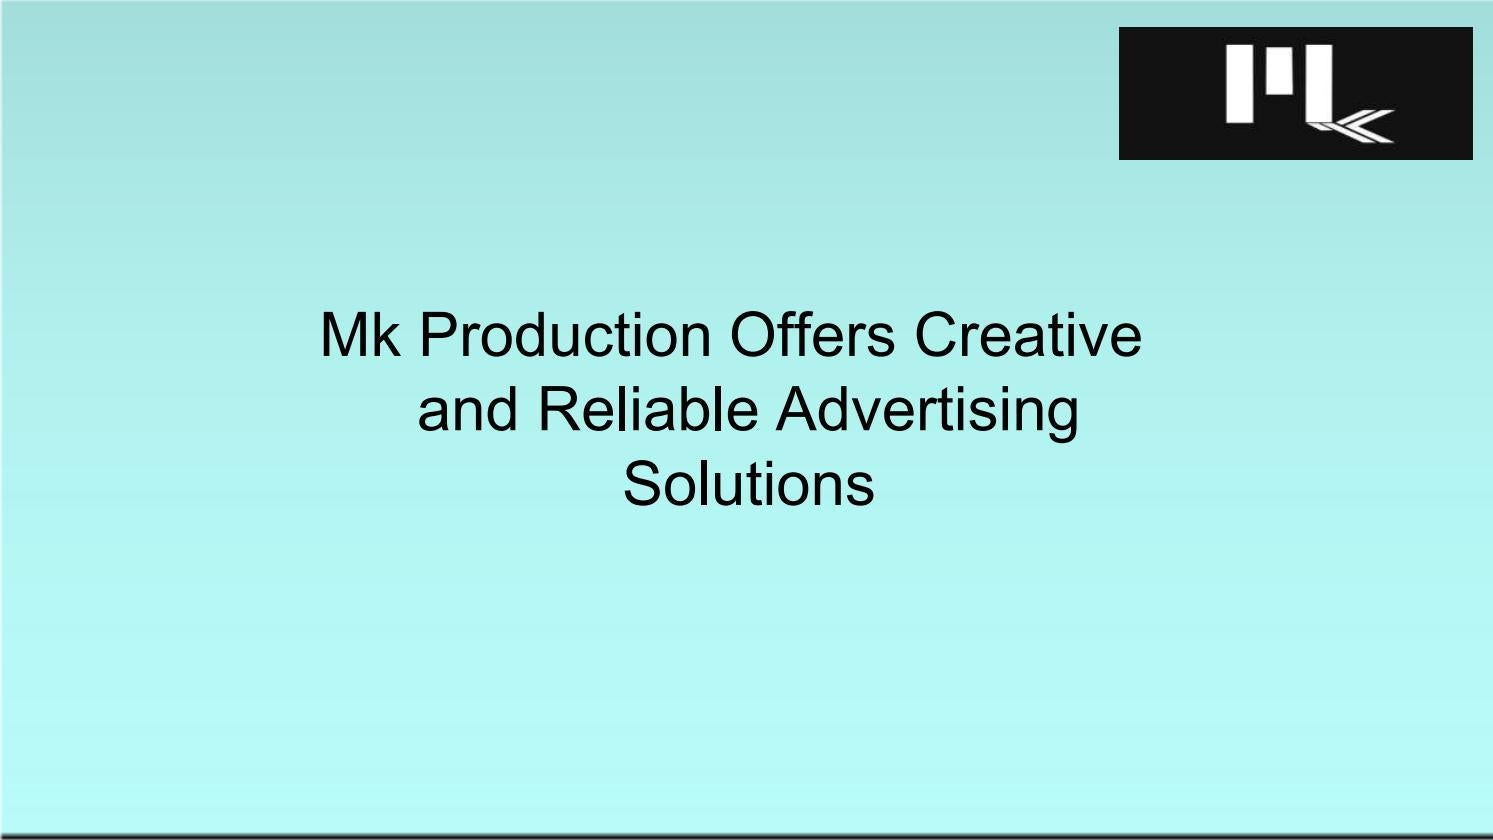 Mk Production Offers Creative and Reliable Advertising Solutions